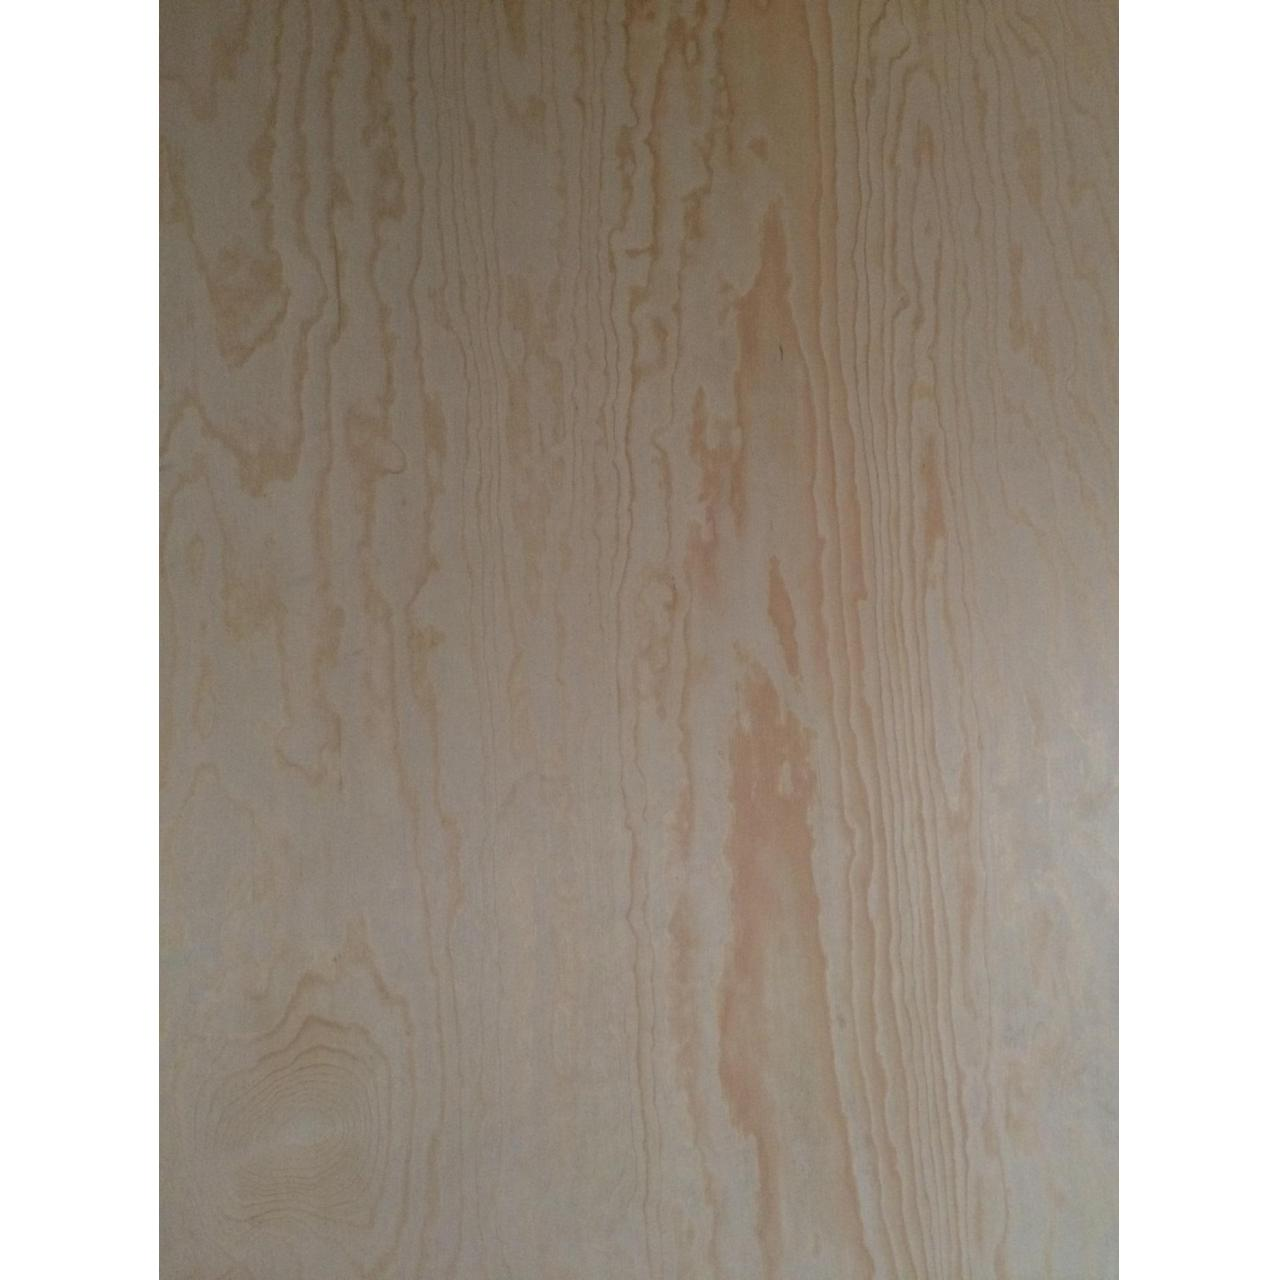 Plywood Product  Peeling pine